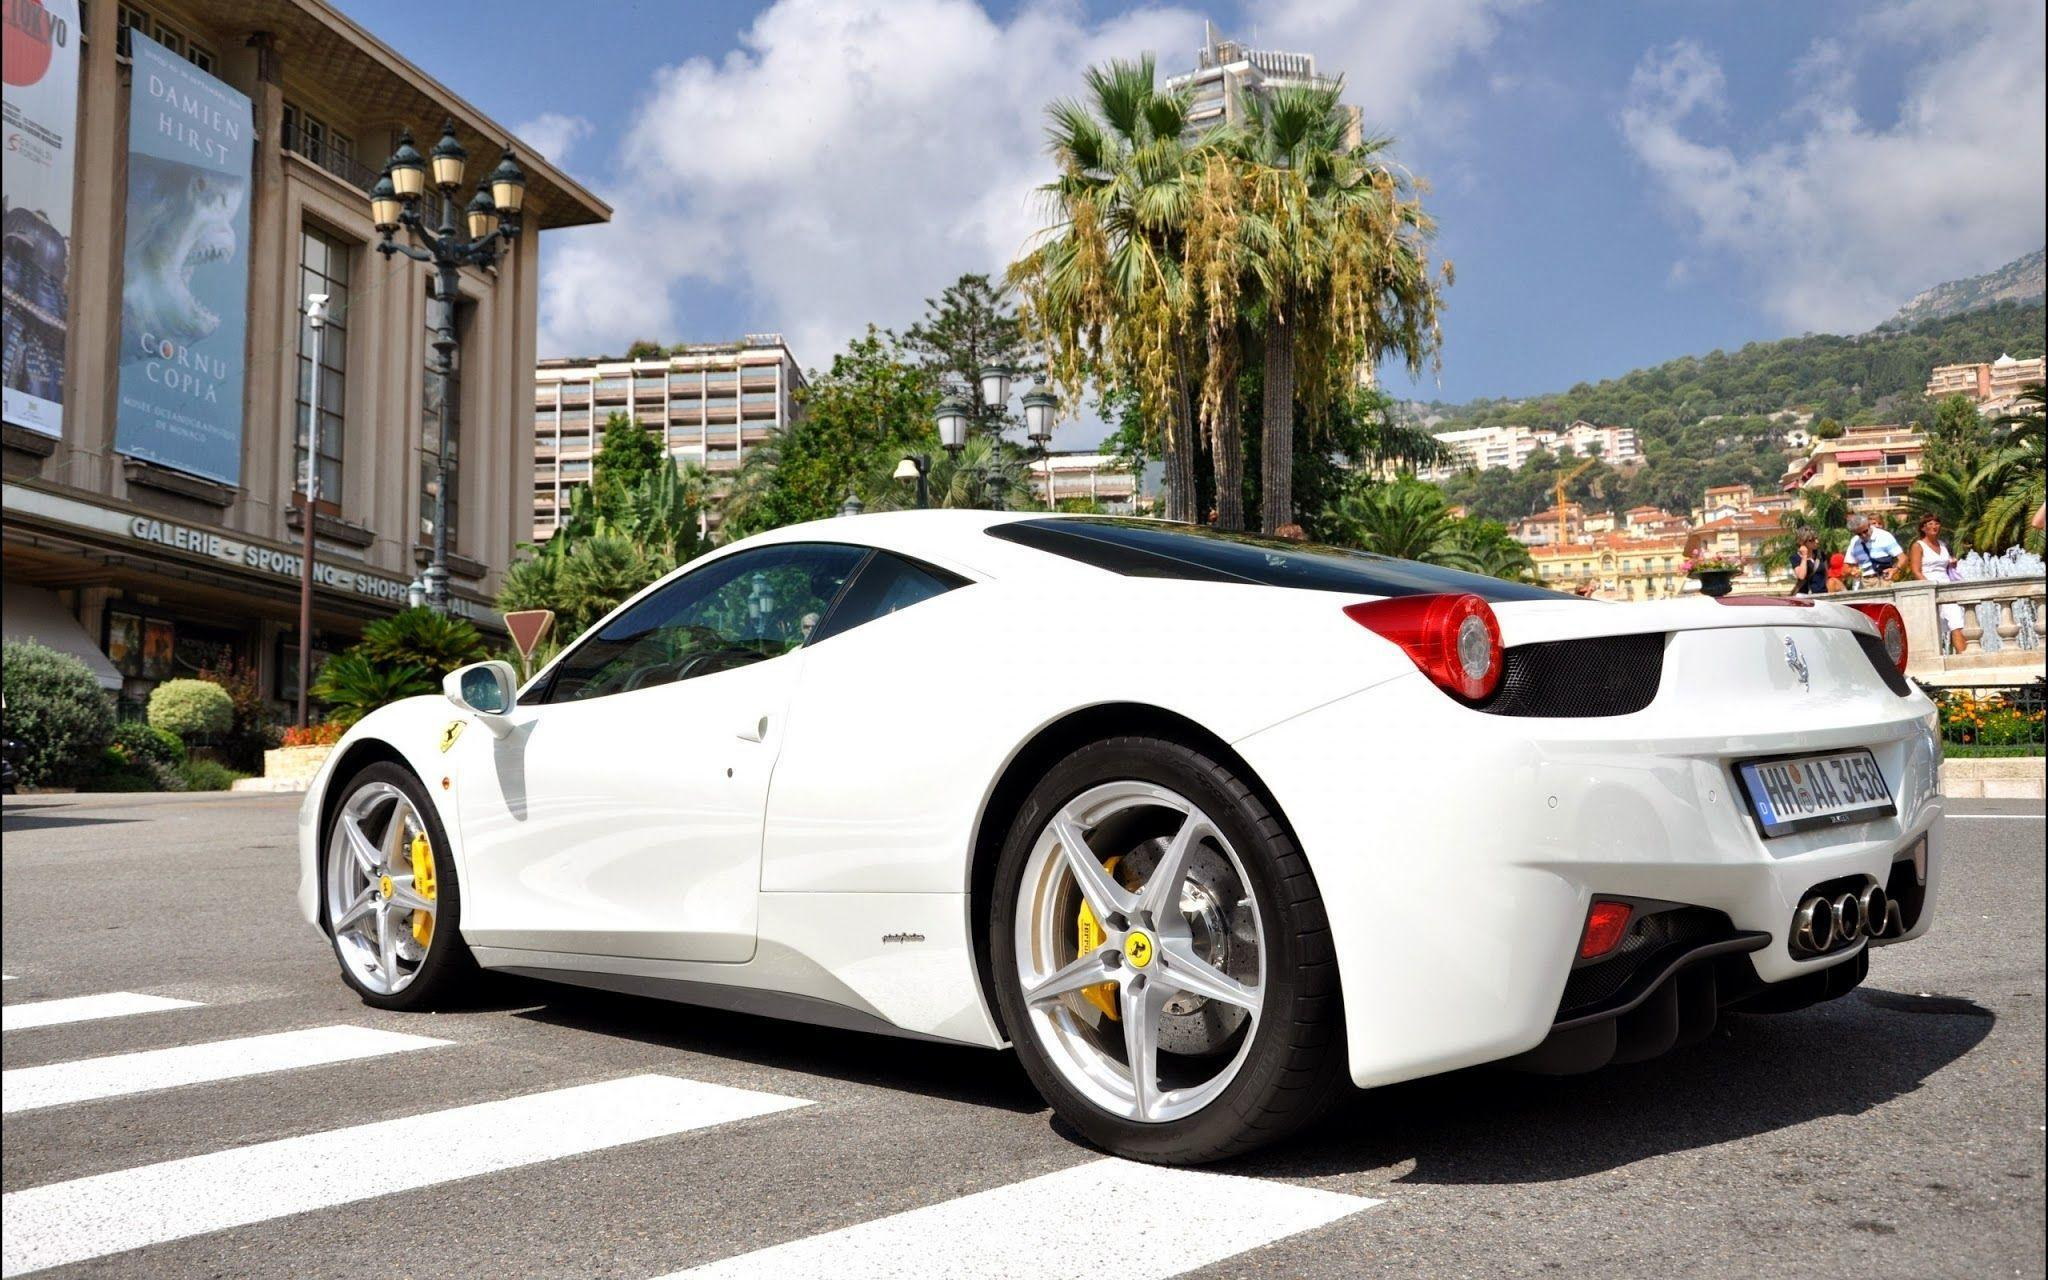 2015 Ferrari 458 Italia Wallpapers - Wallpaper Cave